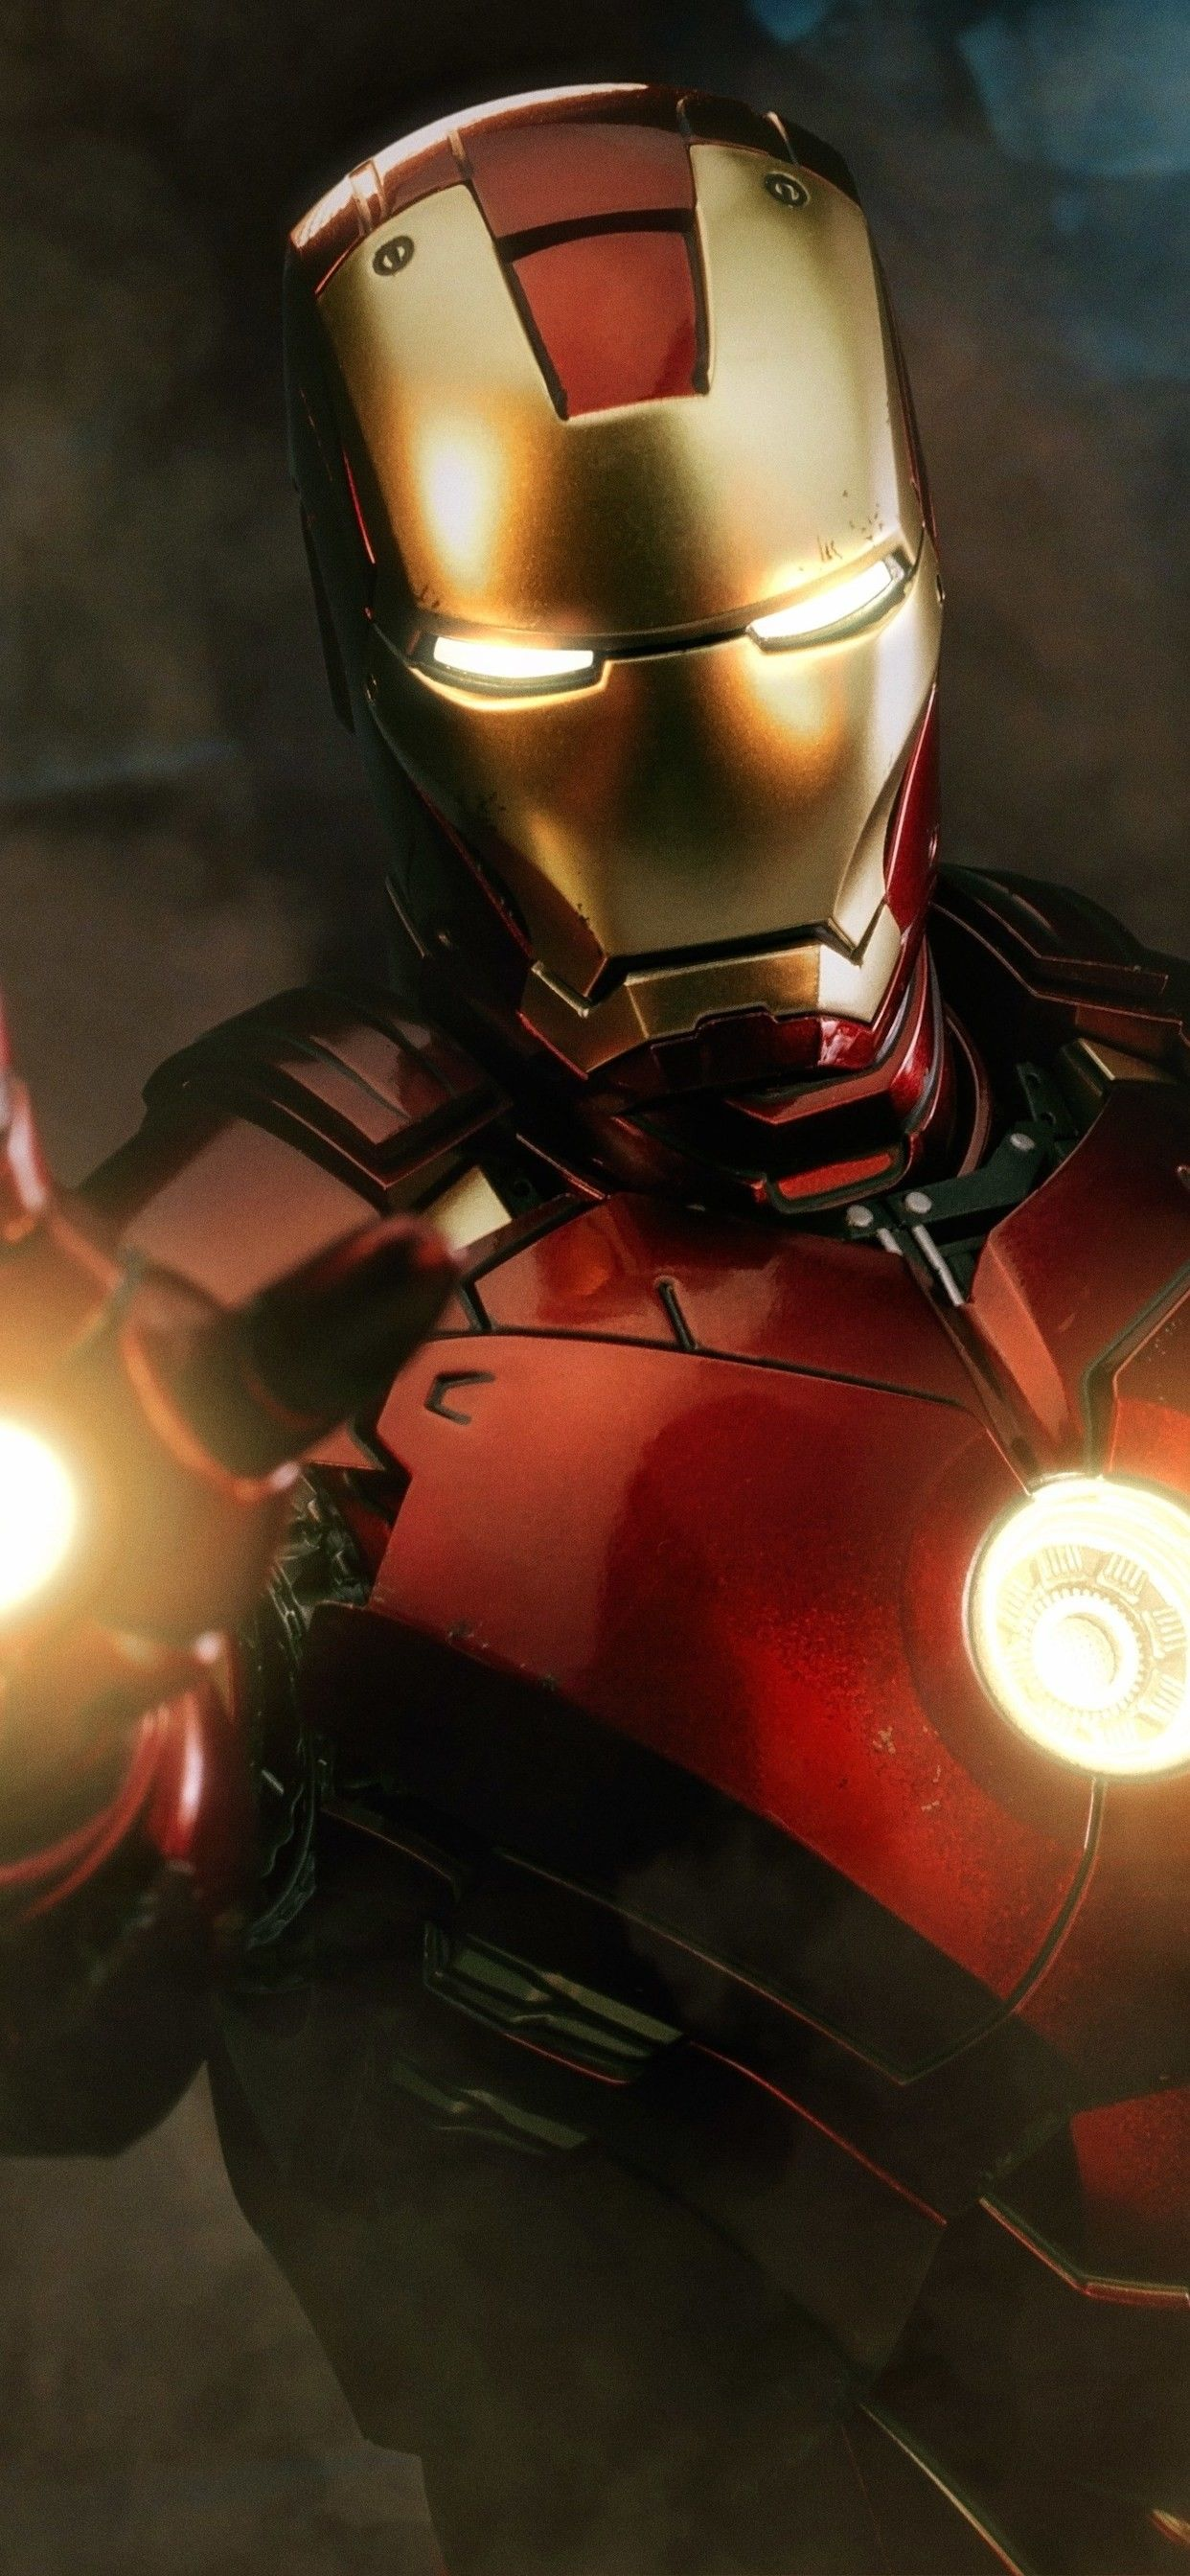 Iphone Xr Wallpaper 4k Download Free Mywallpapers Site Iron Man Wallpaper Man Wallpaper Iphone Wallpaper For Guys